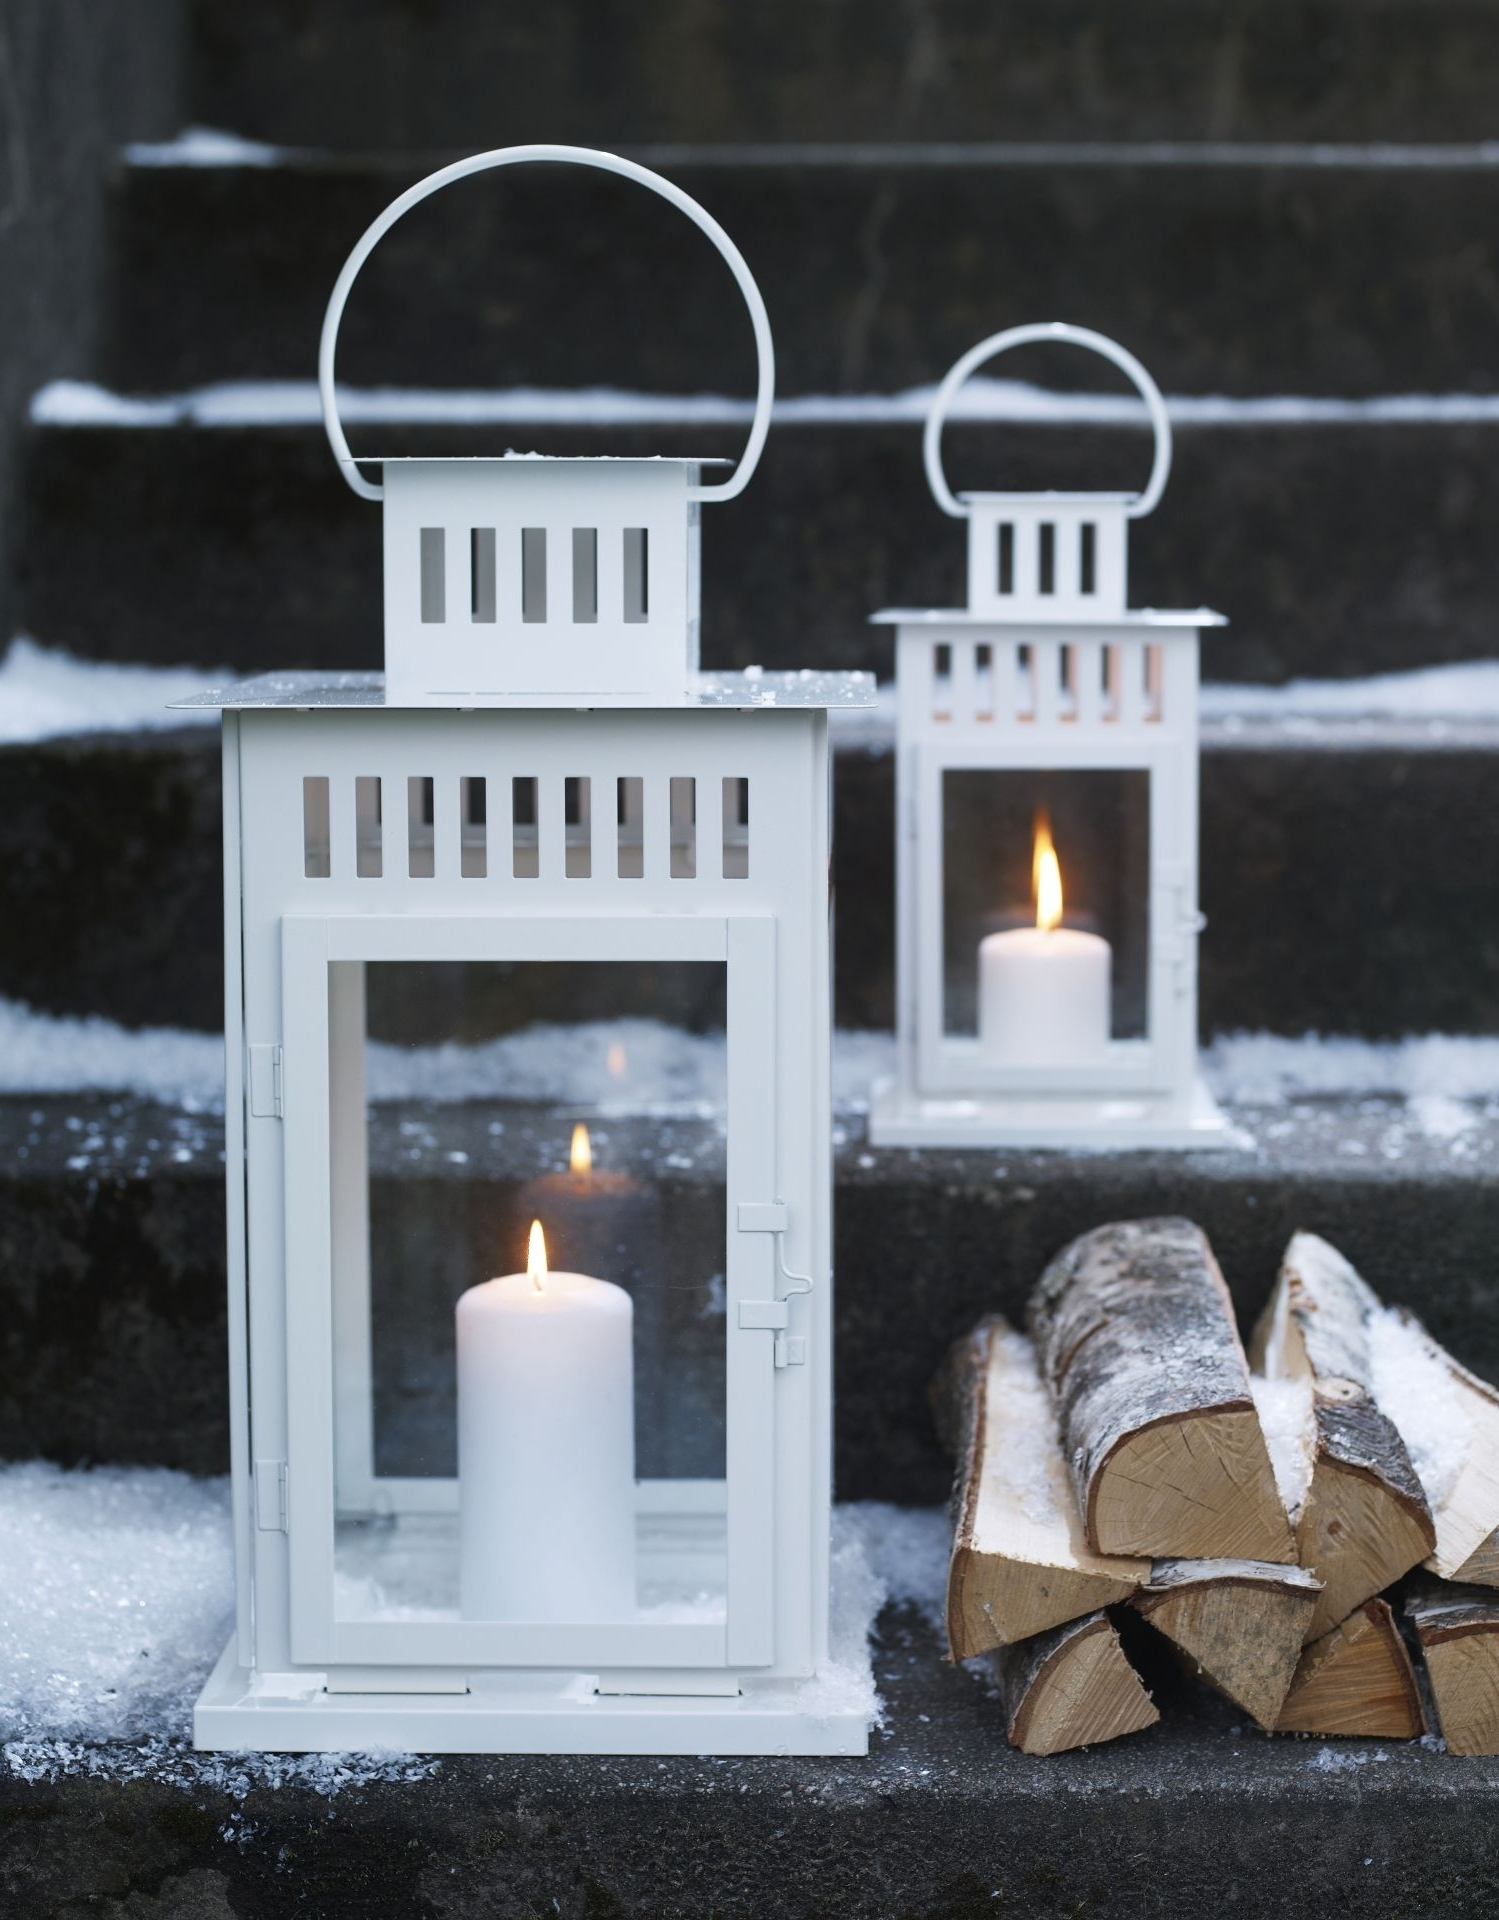 Well Known Ikea Outdoor Lanterns With Regard To Borrby Lanterna P/vela Grossa, Preto Interior/exterior Preto (View 16 of 20)